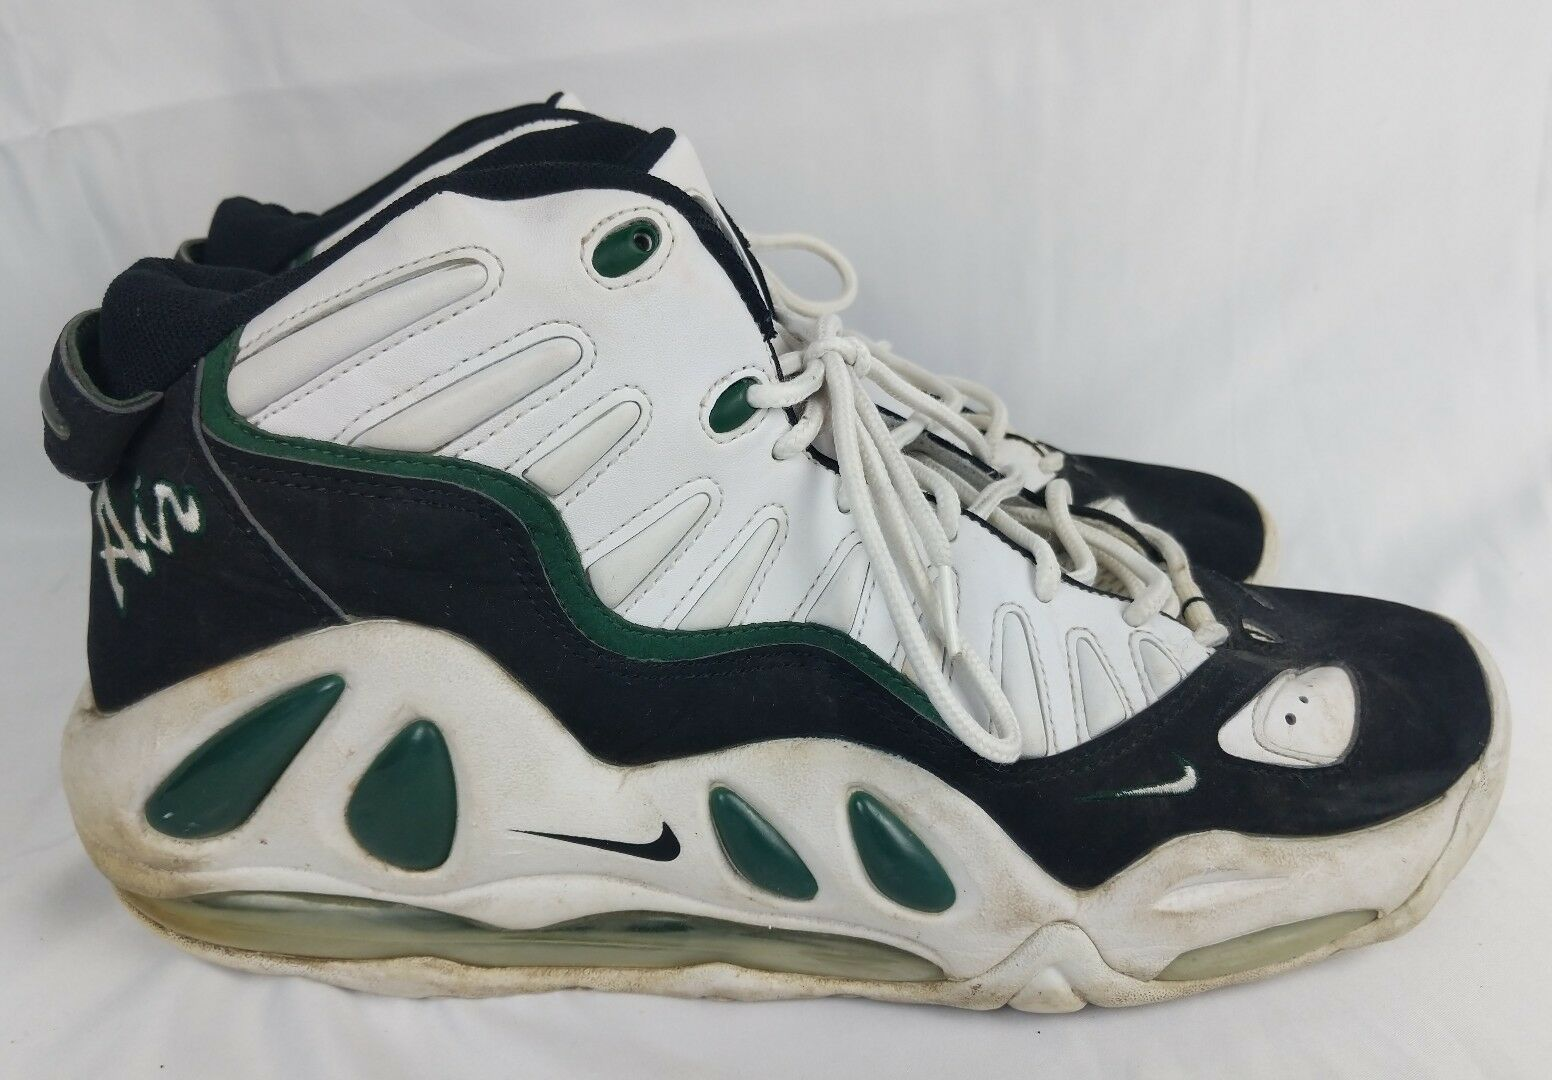 Vintage Nike Air Scottie Pippen Shoes White Black Green Size 17